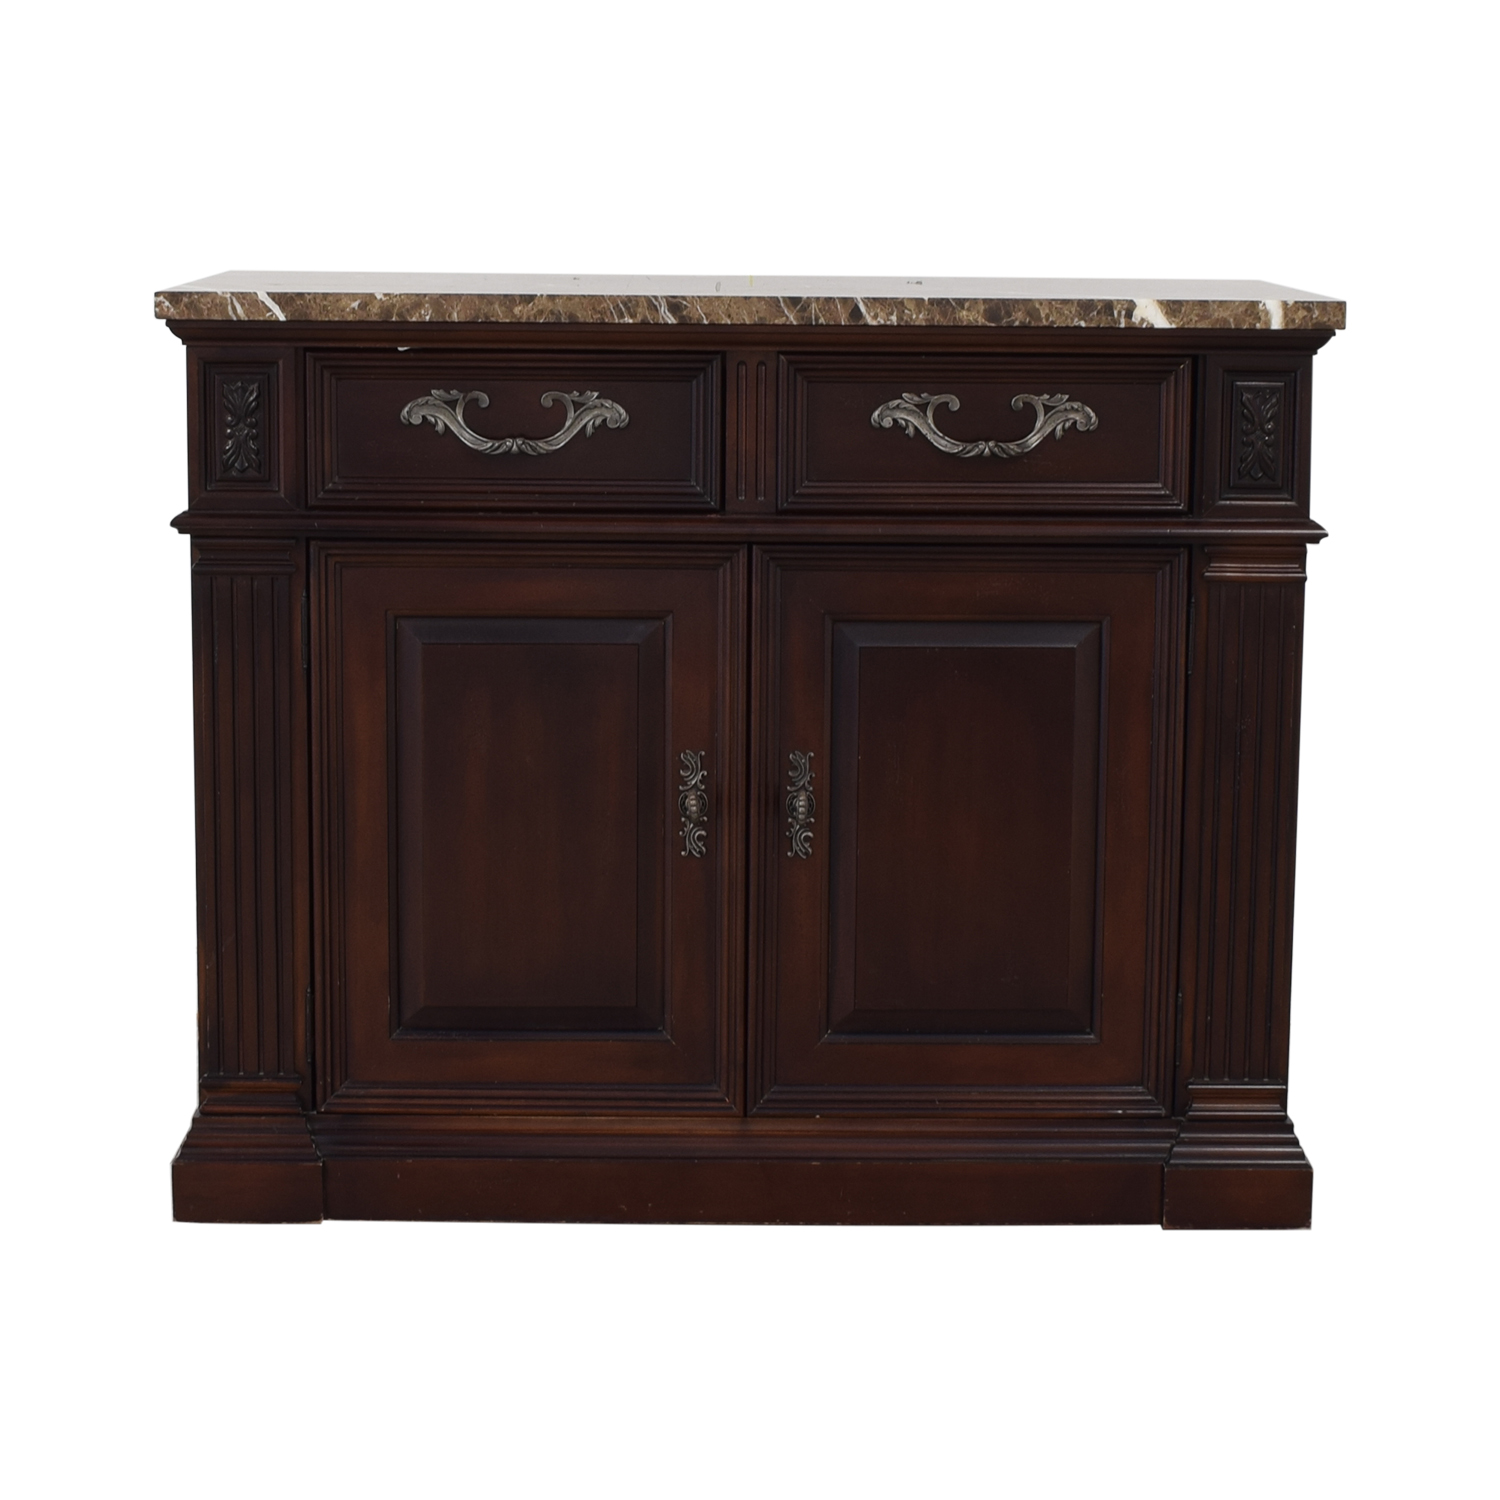 buy Bernhardt Buffet and Server Bernhardt Cabinets & Sideboards